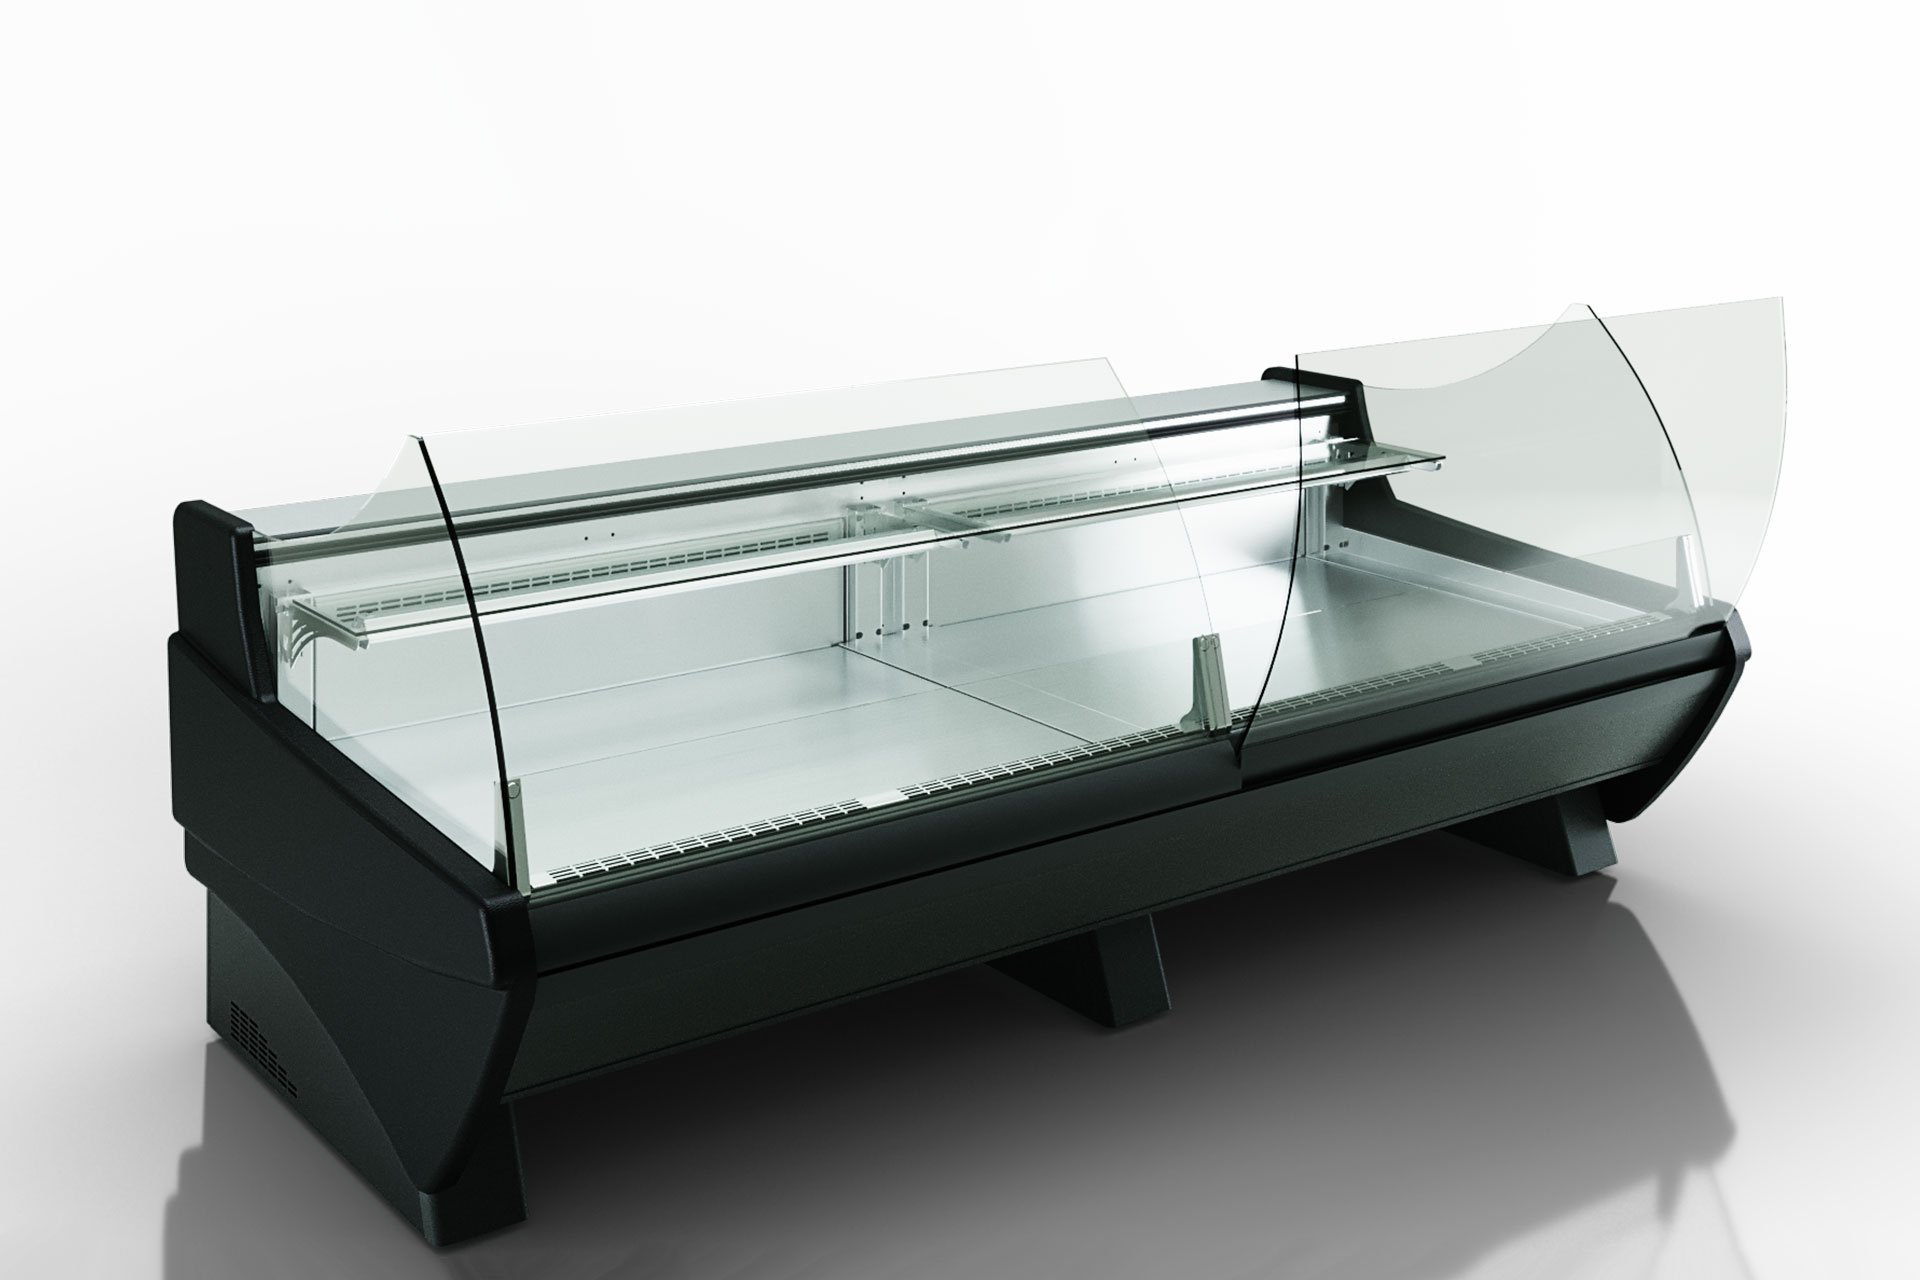 Symphony luxe MG 120 patisserie T2 110-DLM